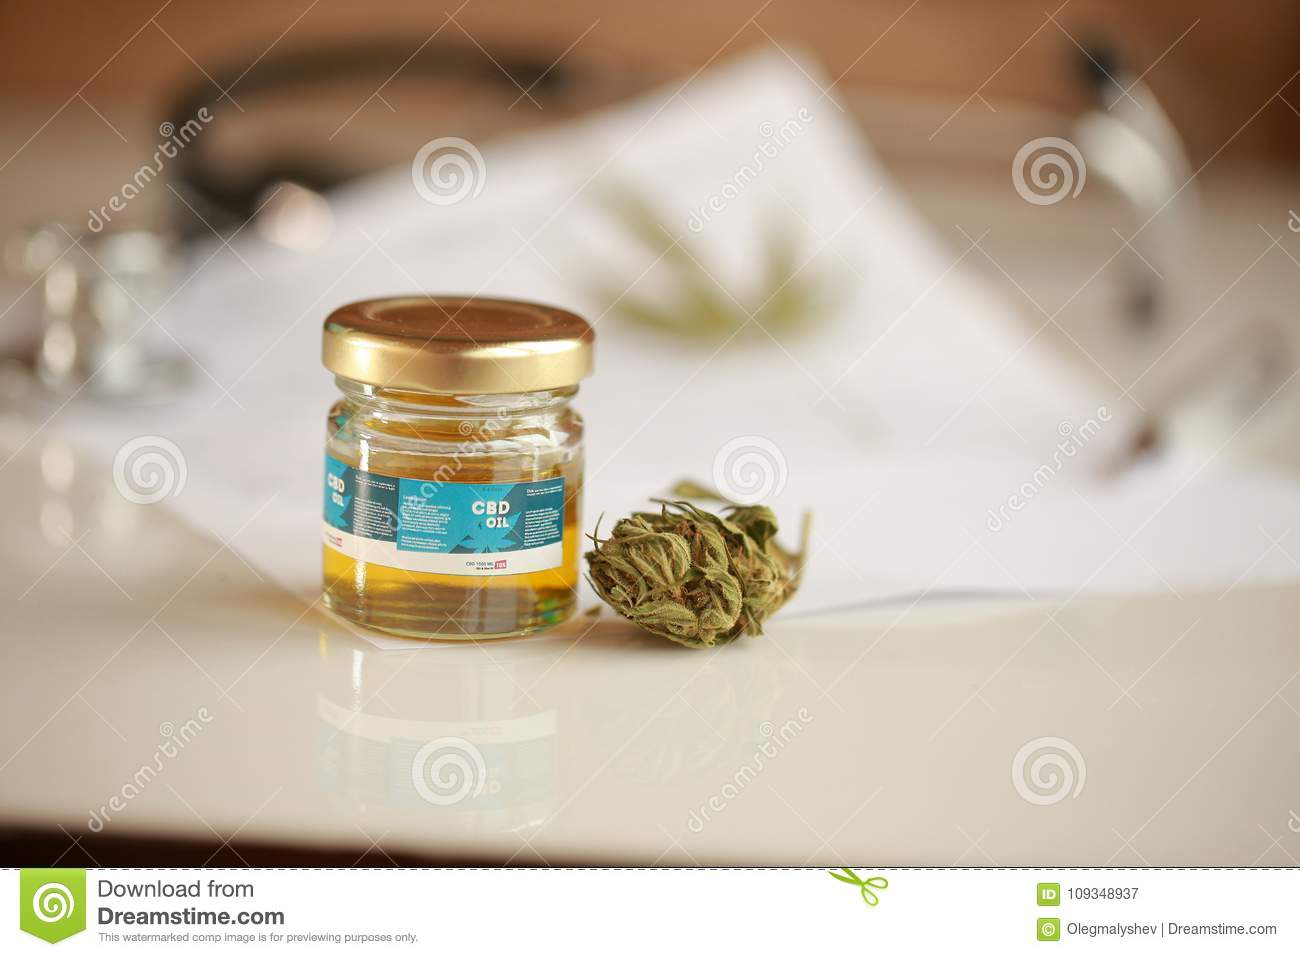 Medical Marijuana Business Cannabis, CBD Oil ,stethoscope And Recipe